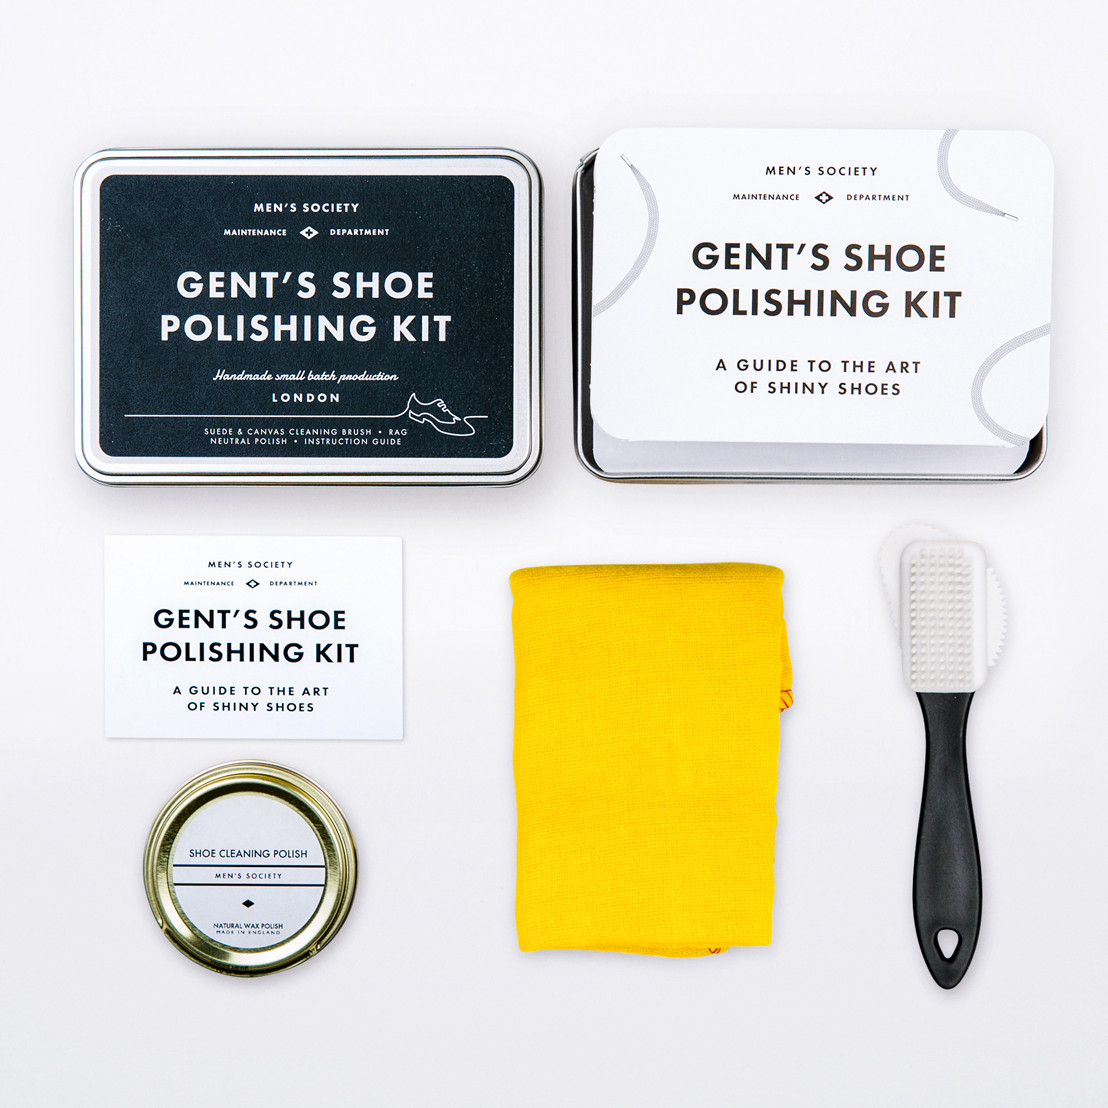 Gents shoe polishing kit